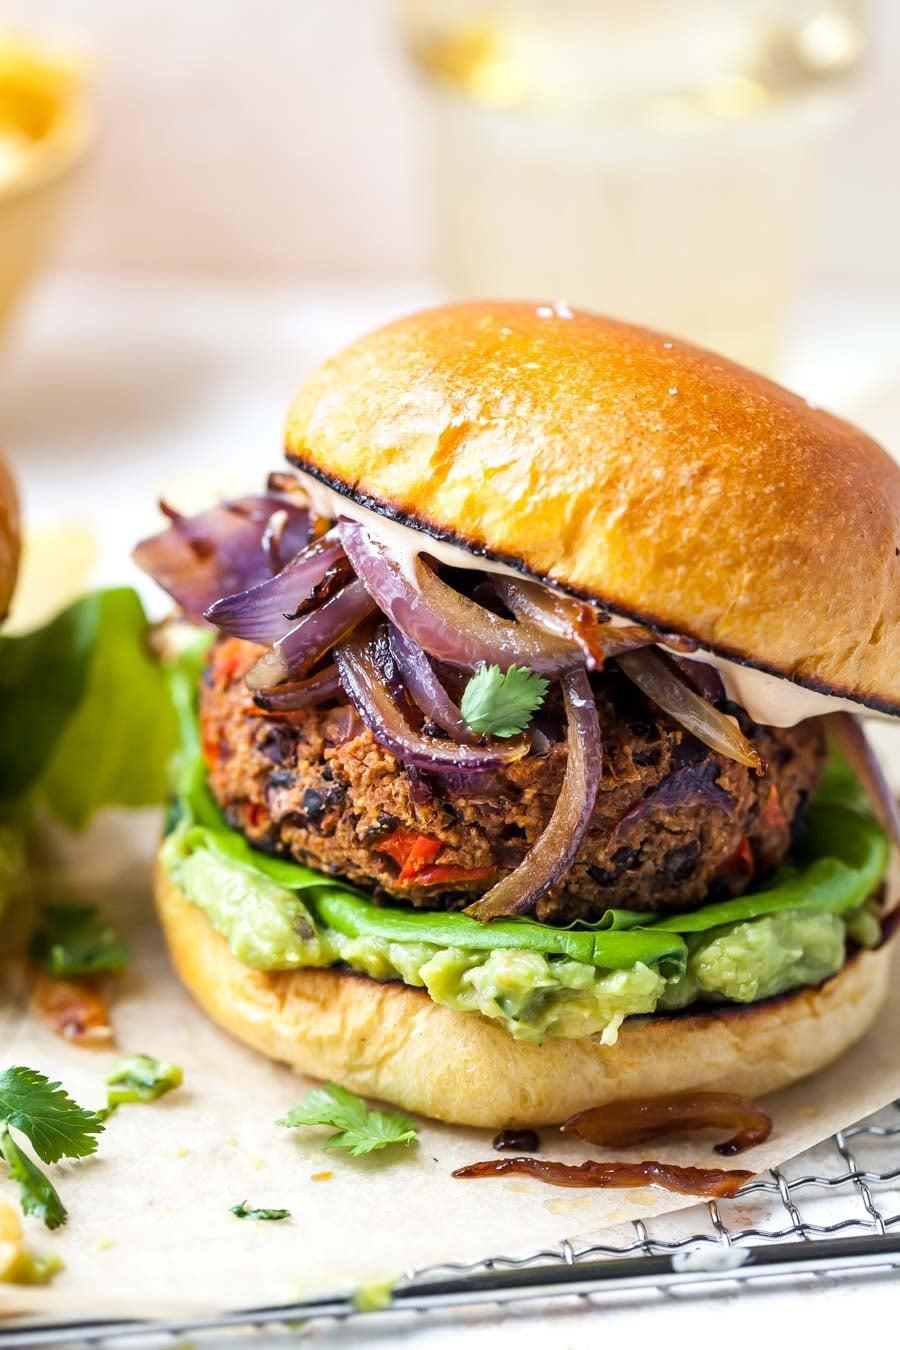 "<p>Jam-packed with peppers, onions, adobe sauce, and spices, these black bean patties are the vegetarian dinner option you've been wishing for. Don't be shy when adding the spicy chipotle sauce. . . it's <i>really</i> good.</p> <p><strong>Get the recipe</strong>: <a href=""https://dishingouthealth.com/chipotle-black-bean-burgers/"" class=""link rapid-noclick-resp"" rel=""nofollow noopener"" target=""_blank"" data-ylk=""slk:chipotle black bean burgers"">chipotle black bean burgers</a></p>"